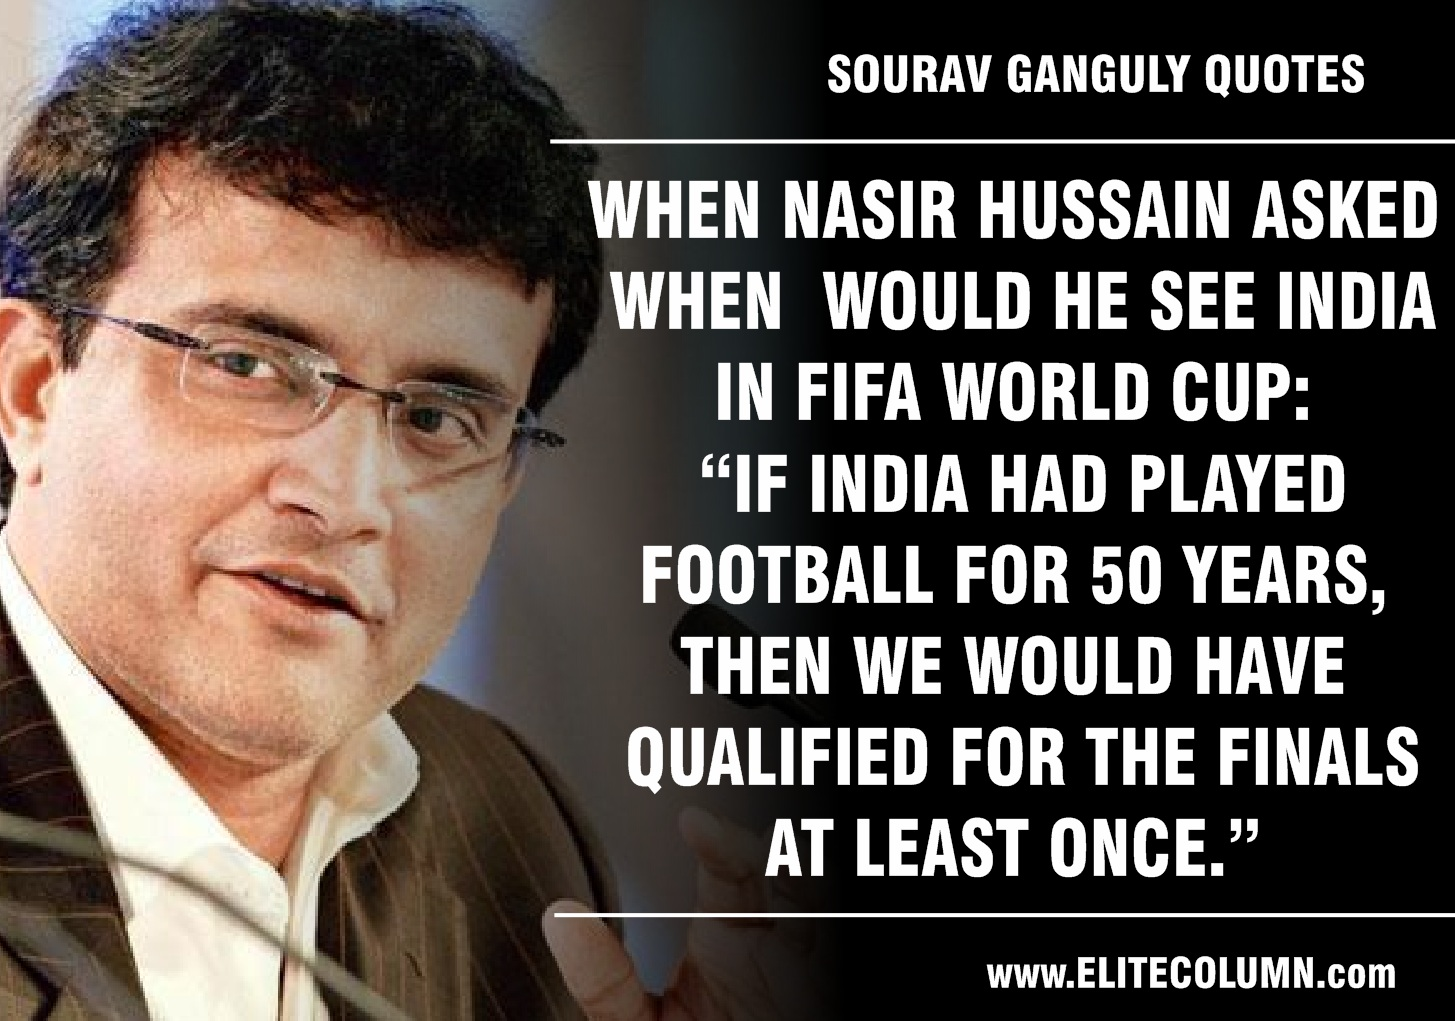 Sourav Ganguly Quotes (9)